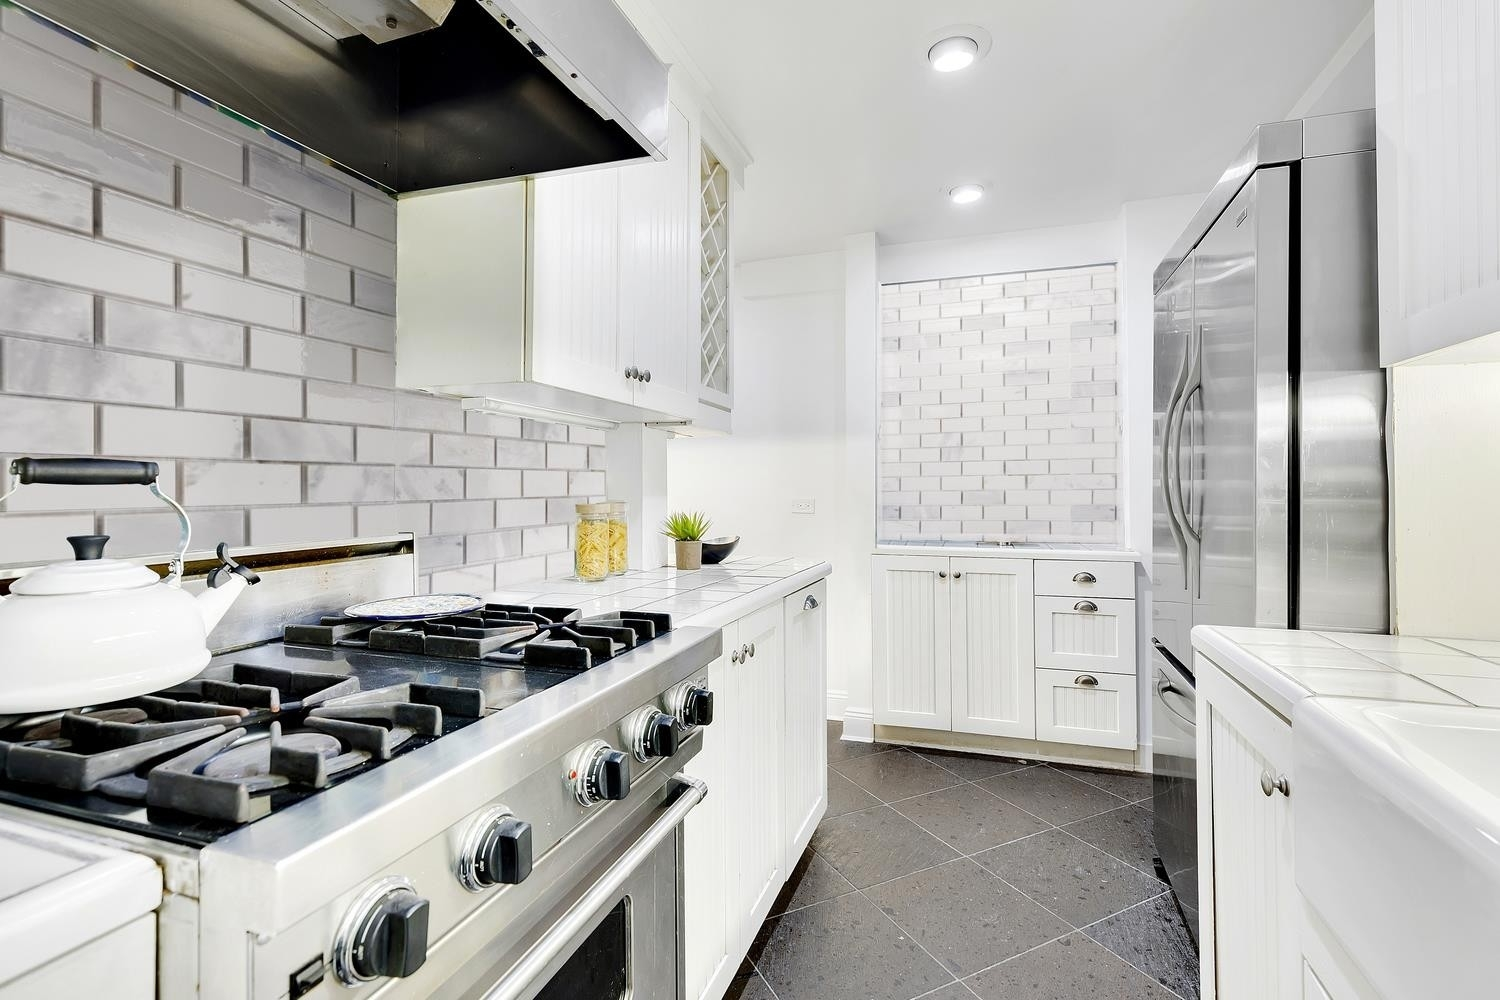 6. Co-op Properties for Sale at GRAMERCY OWNERS LTD, 44 GRAMERCY PARK N, 4C Gramercy Park, New York, NY 10010